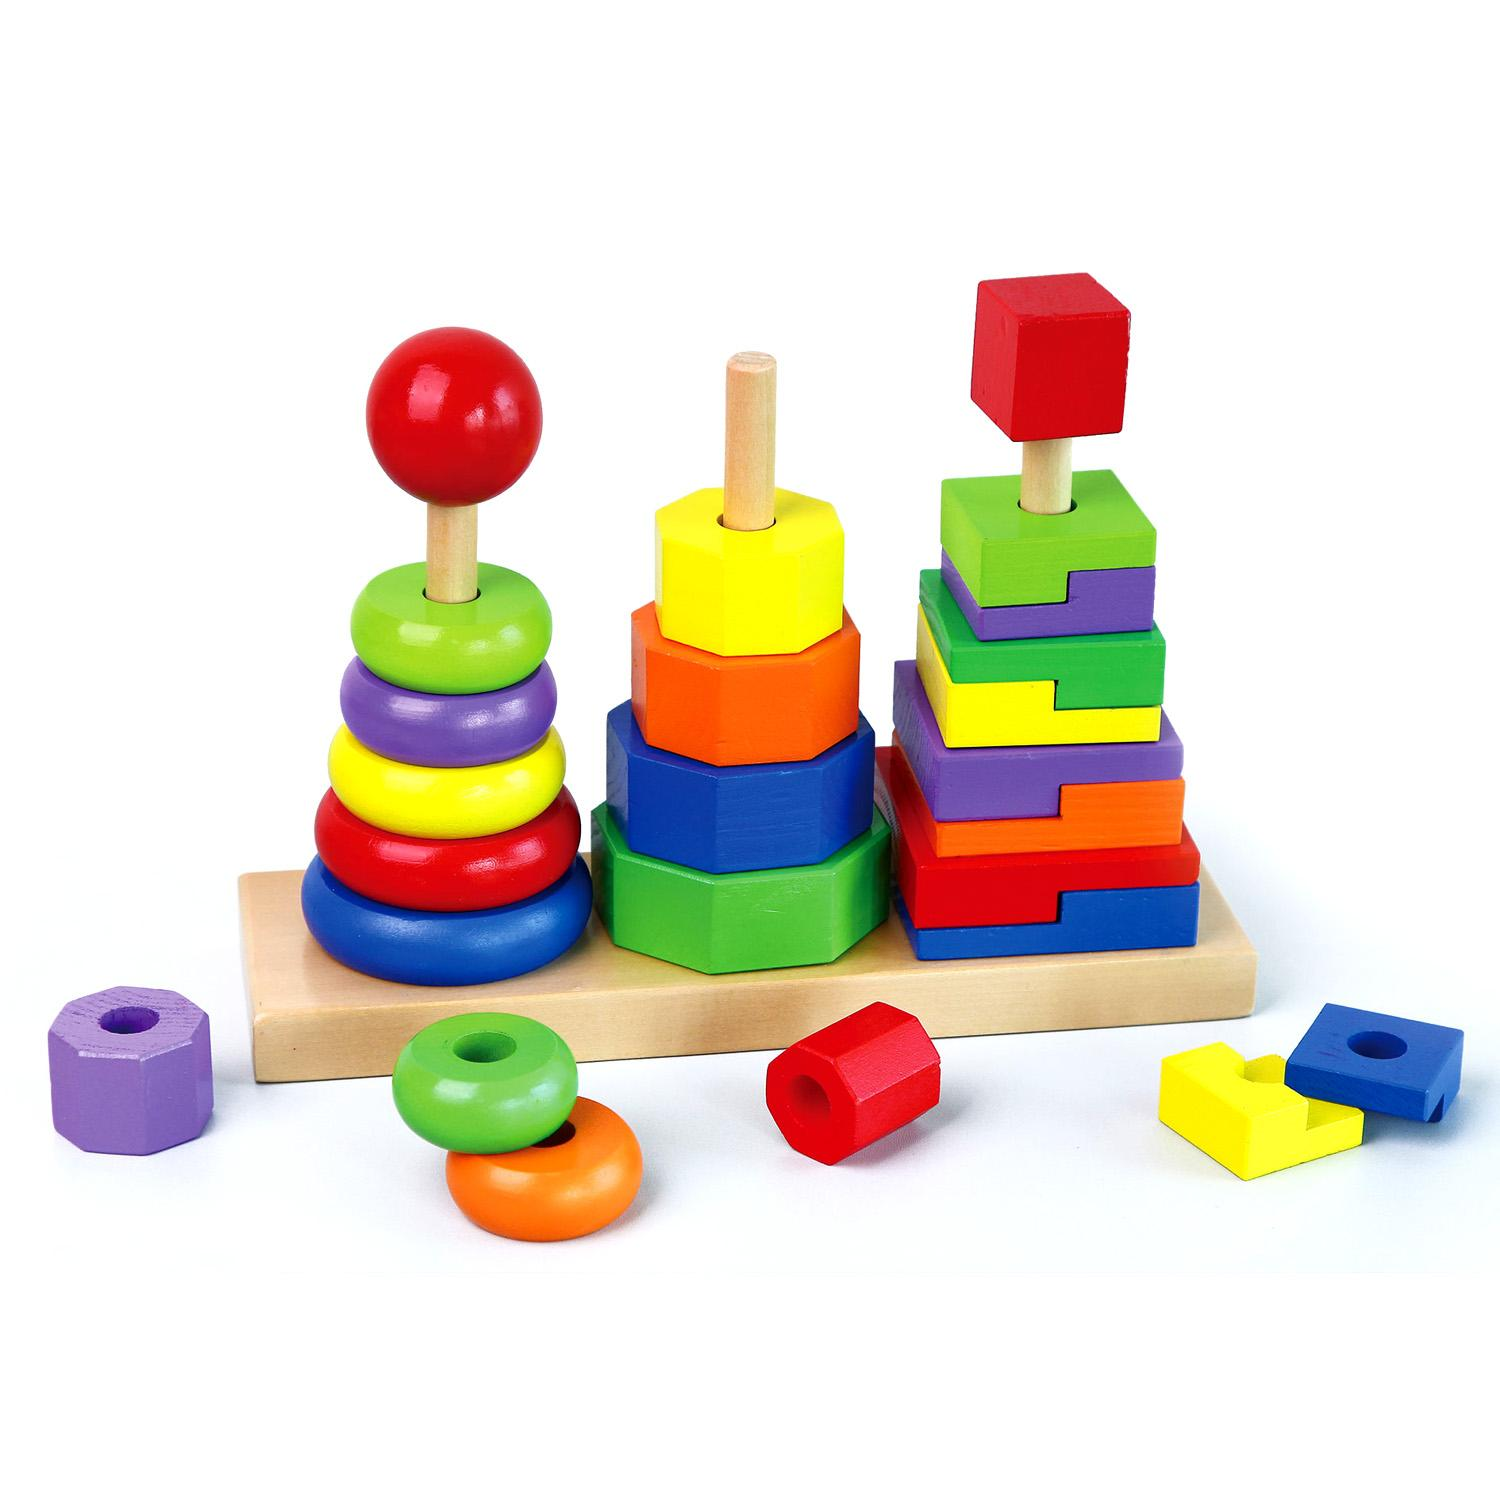 Geometric Stacker Childrens Wooden Educational Stacking Blocks